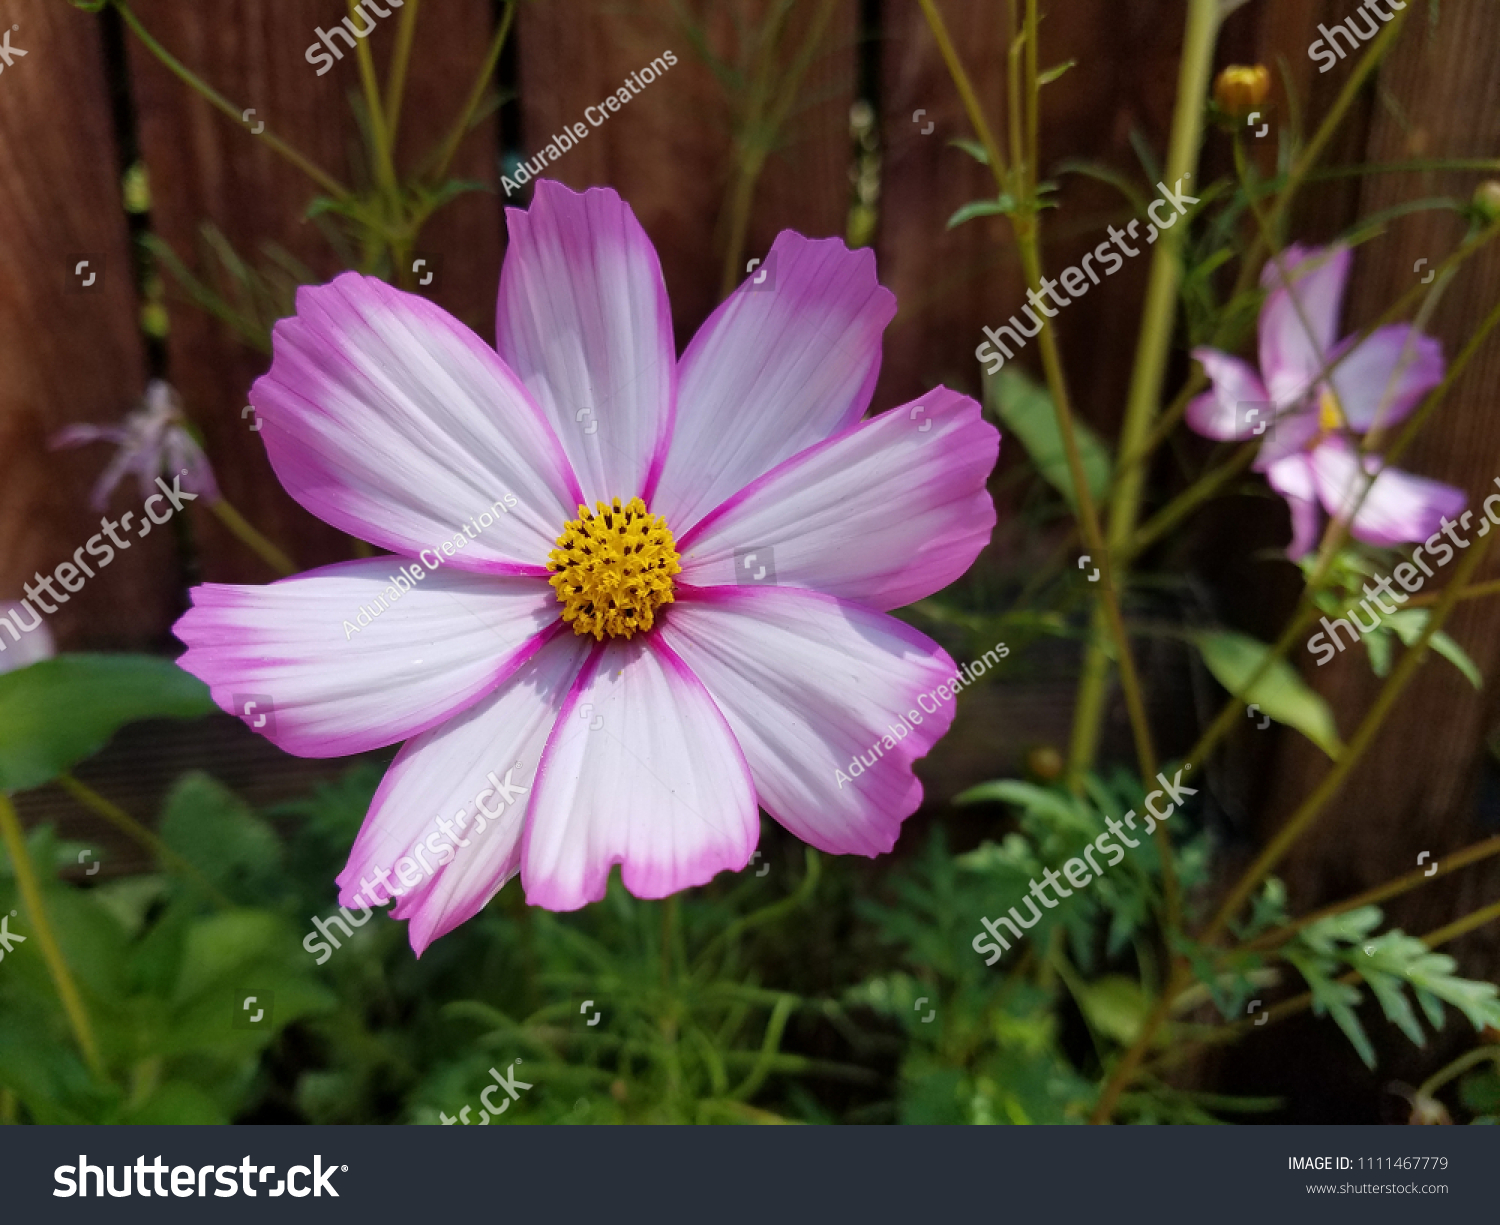 Pink white cosmo flower stock photo royalty free 1111467779 pink and white cosmo flower mightylinksfo